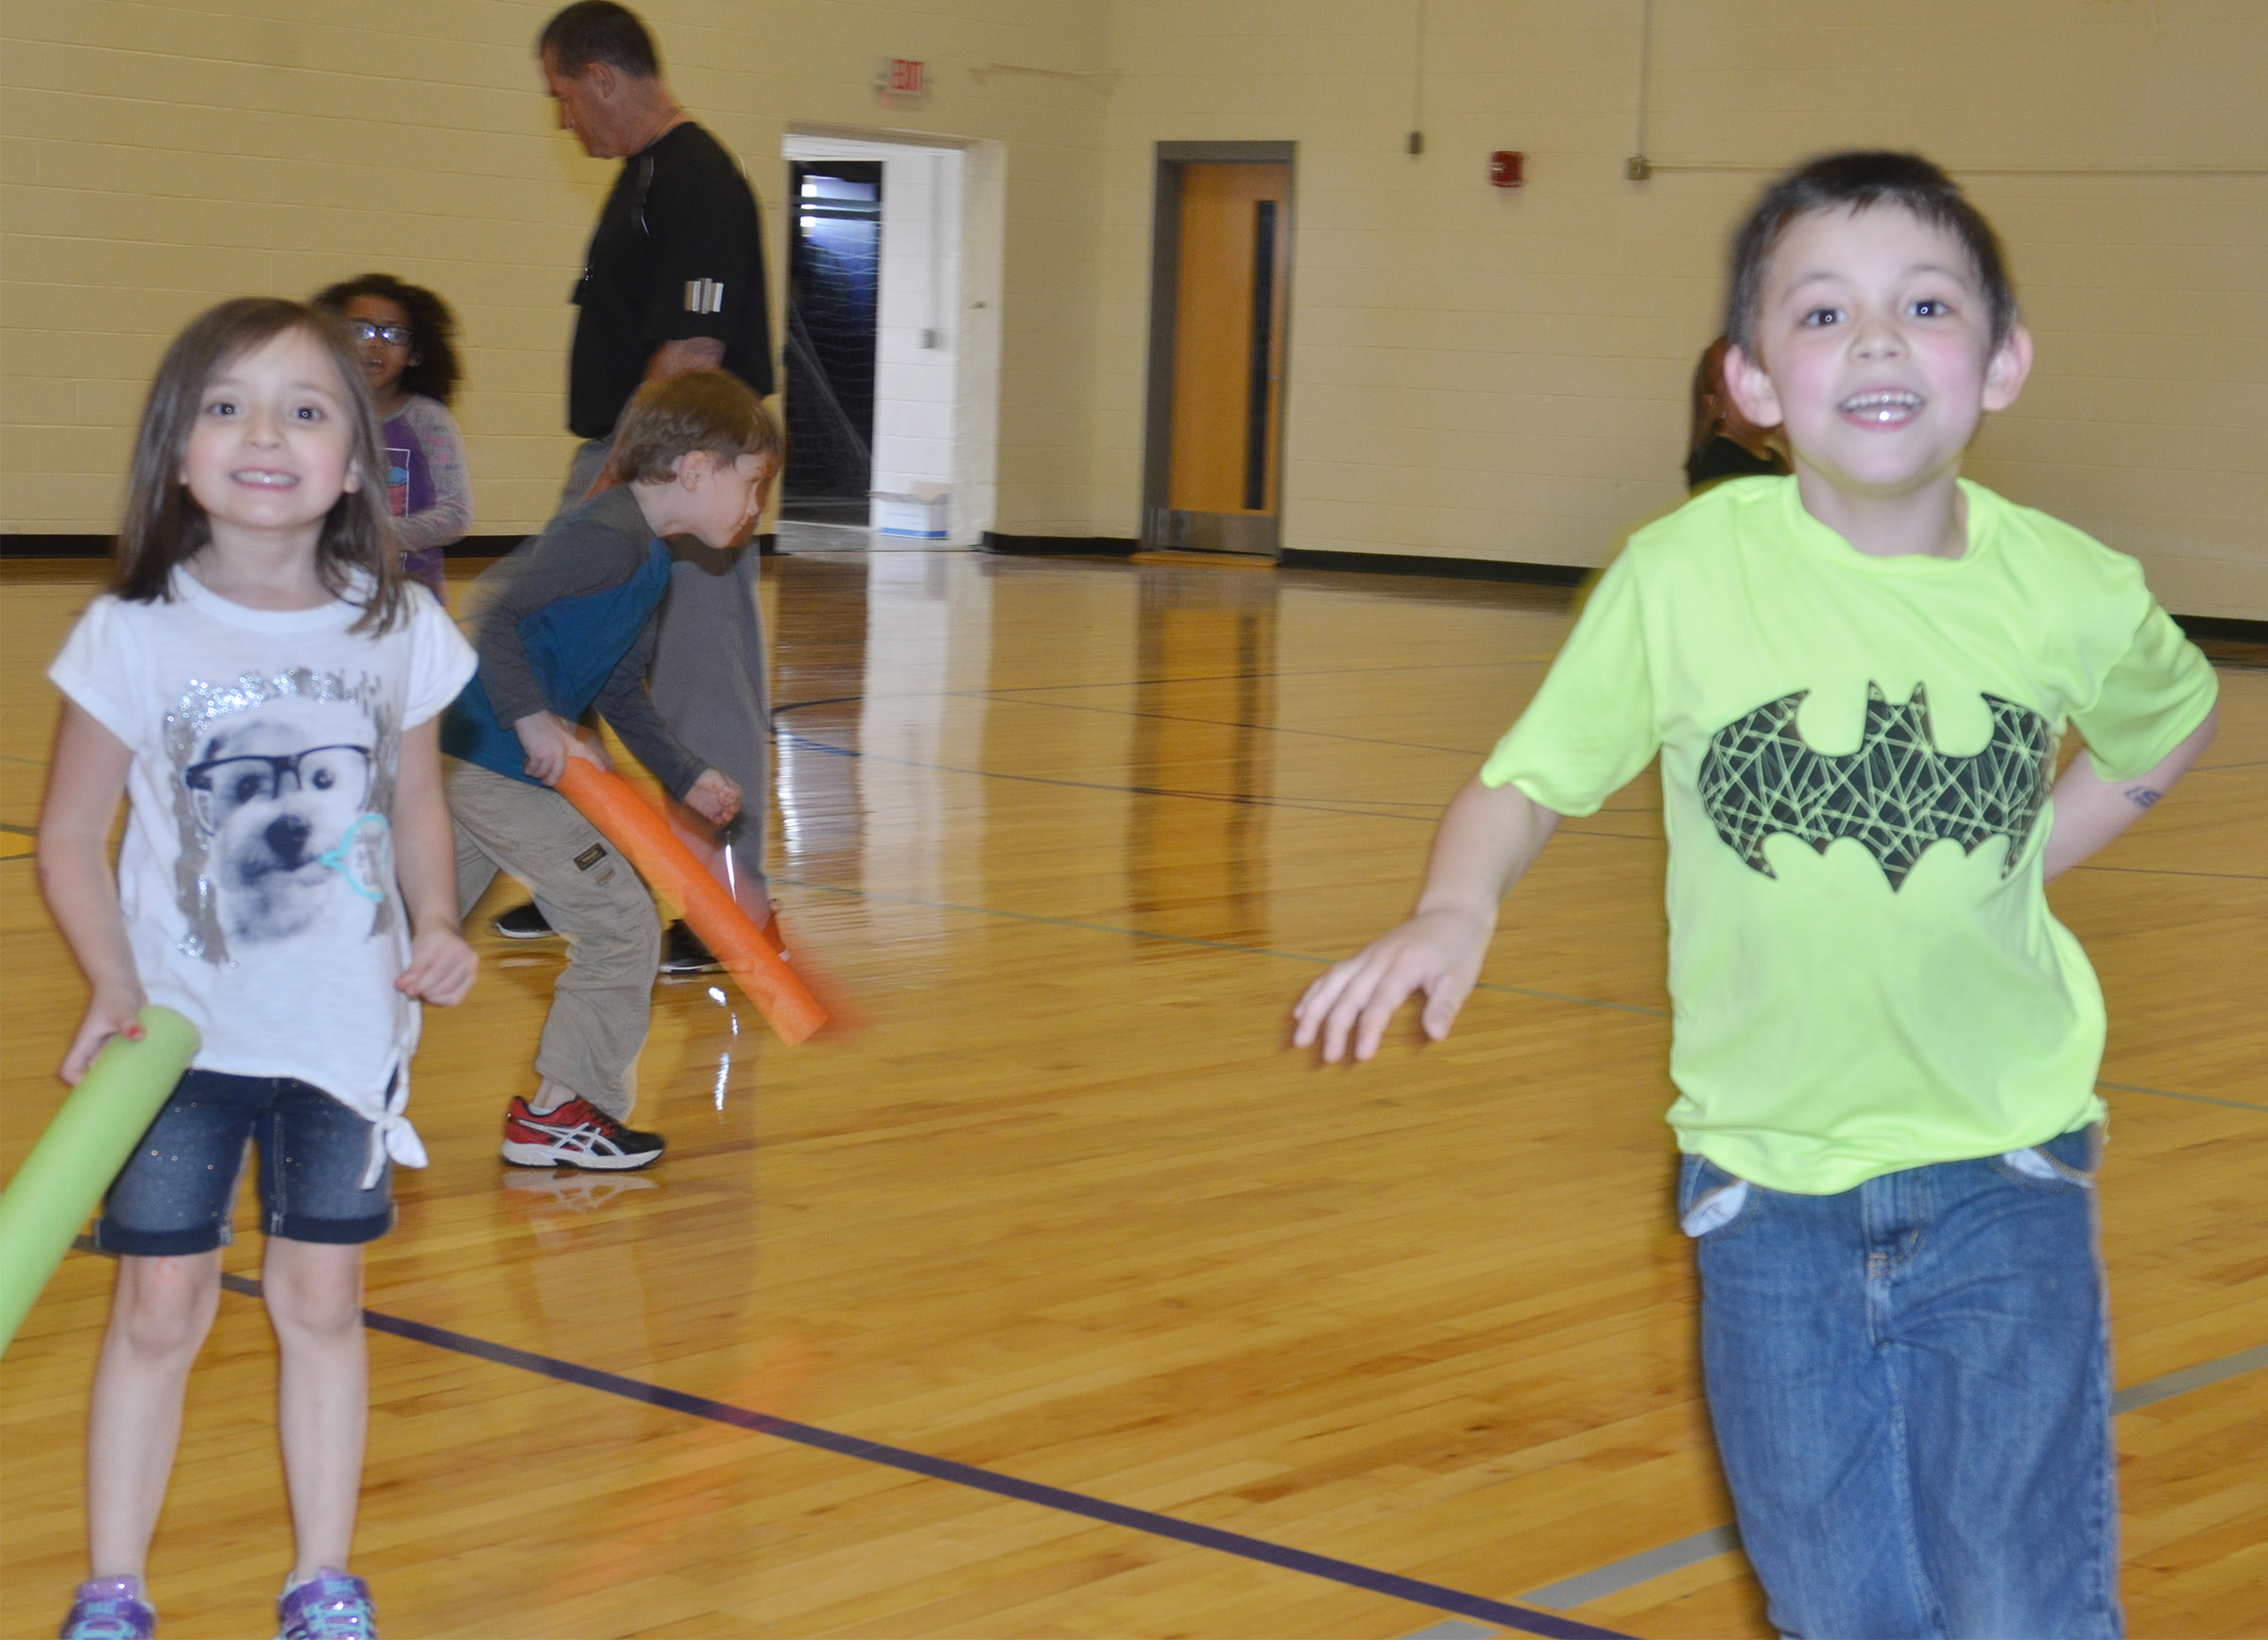 CES kindergarteners Gabriella Tate, at left, and Keagan Shearer play noodle tag.